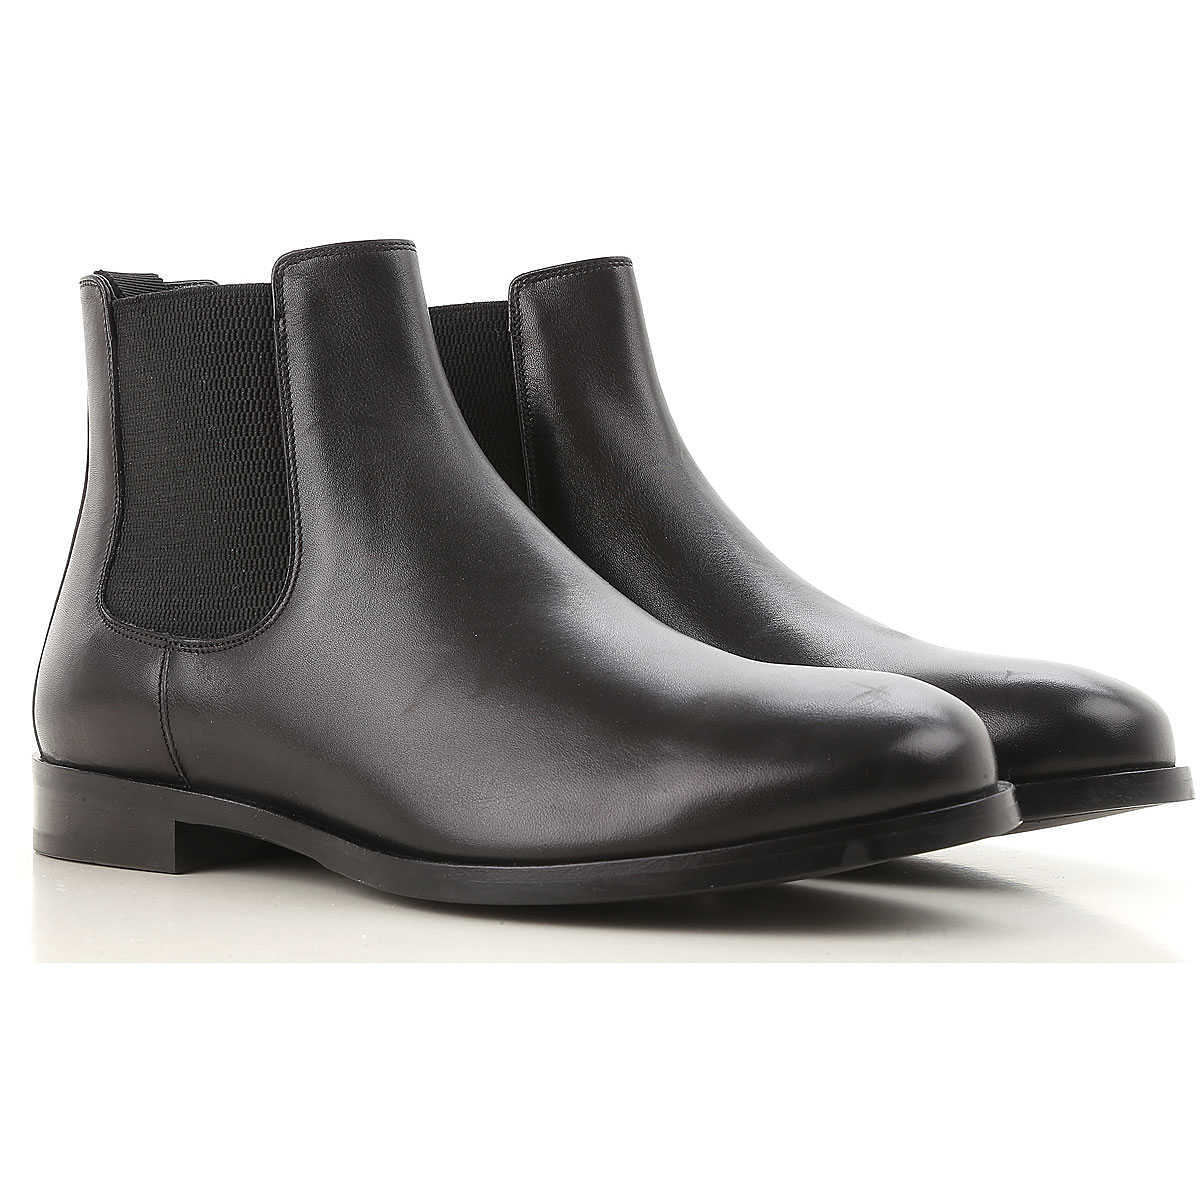 Dolce & Gabbana Boots for Men 10.5 6.5 7 Booties On Sale in Outlet UK - GOOFASH